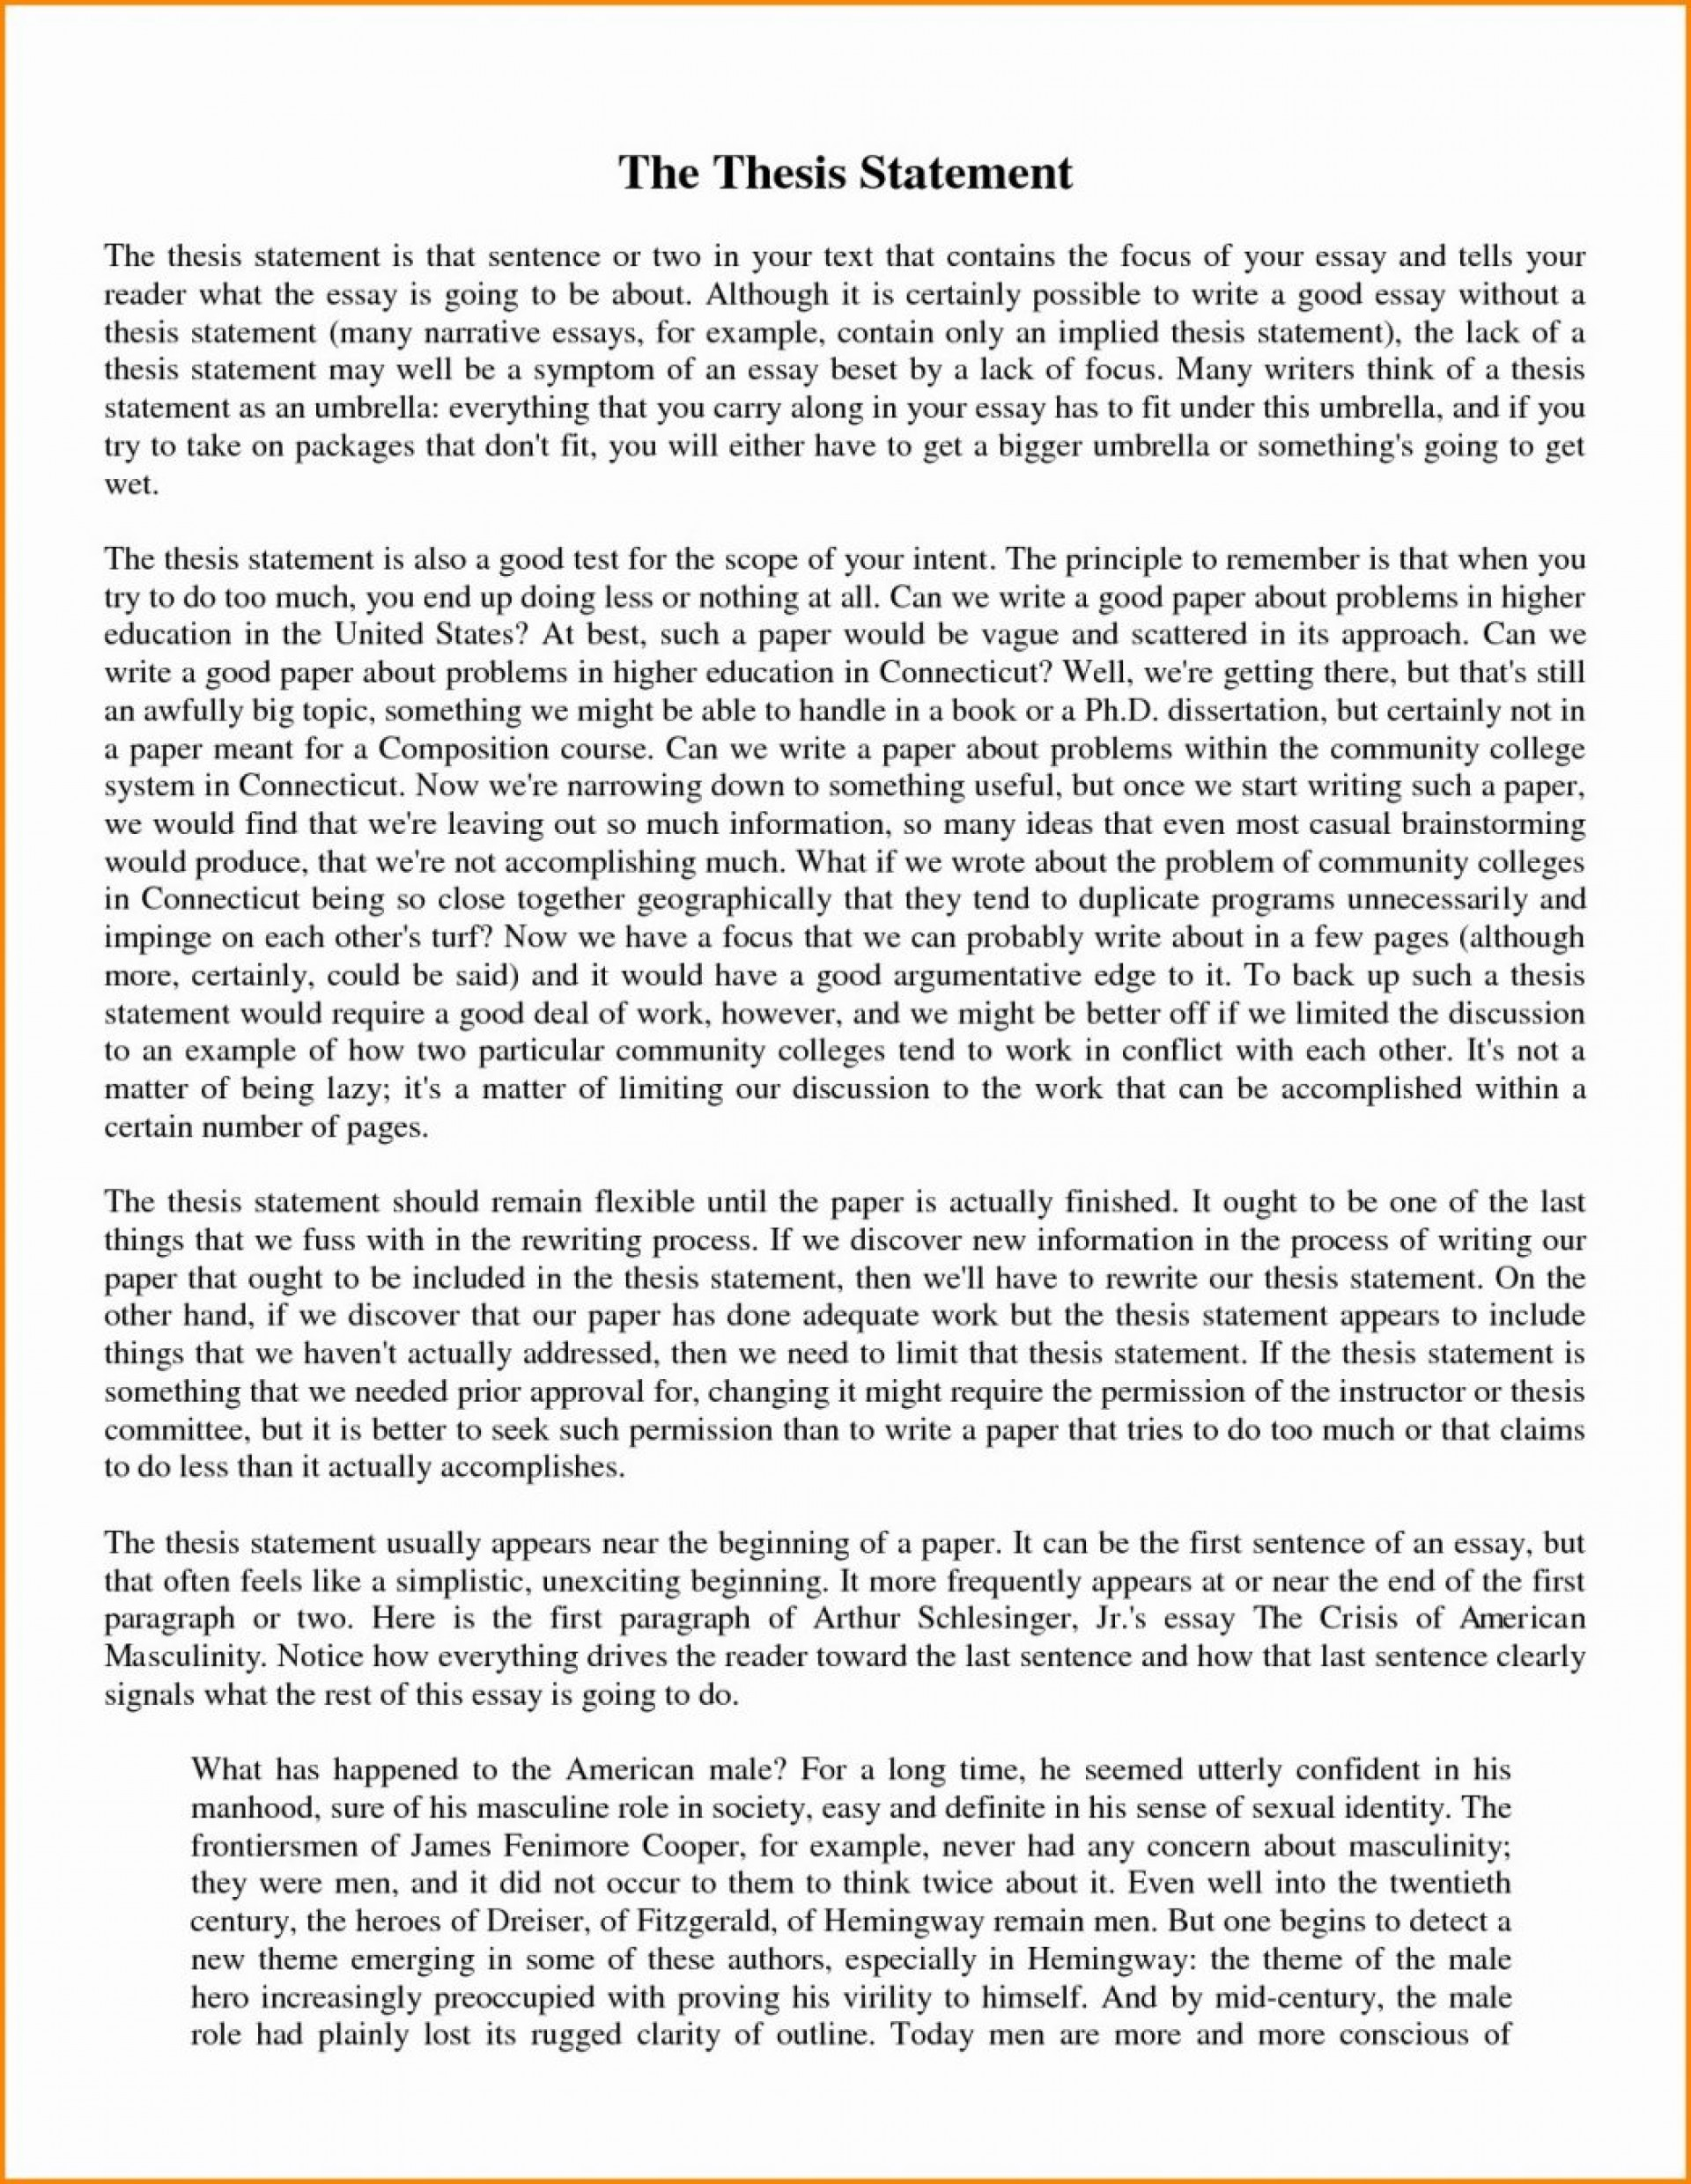 008 Thesis In Essay Example Beautiful Simple Topics For Writing Creative An Statement Unique Ks3 Of Word Argumentative Tips Analytical Examples Expository Sensational Beauty Definition Based Paper 1920